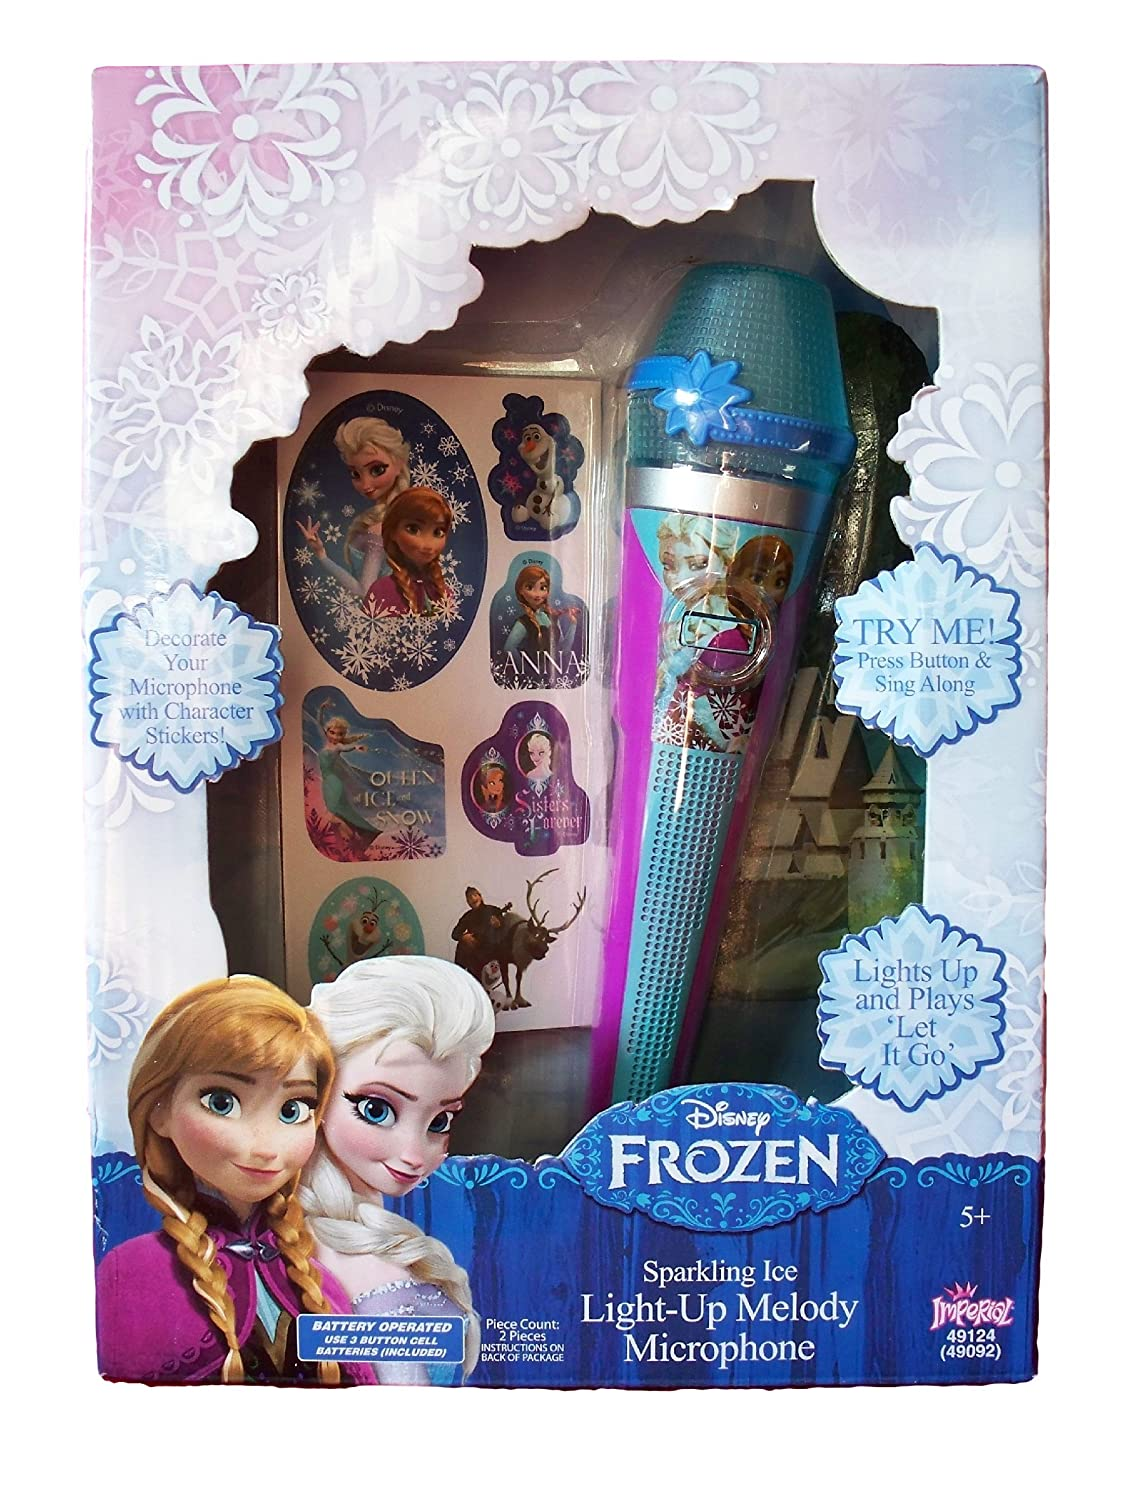 Frozen Sparkling Ice Light Up Melody Microphone Imperial